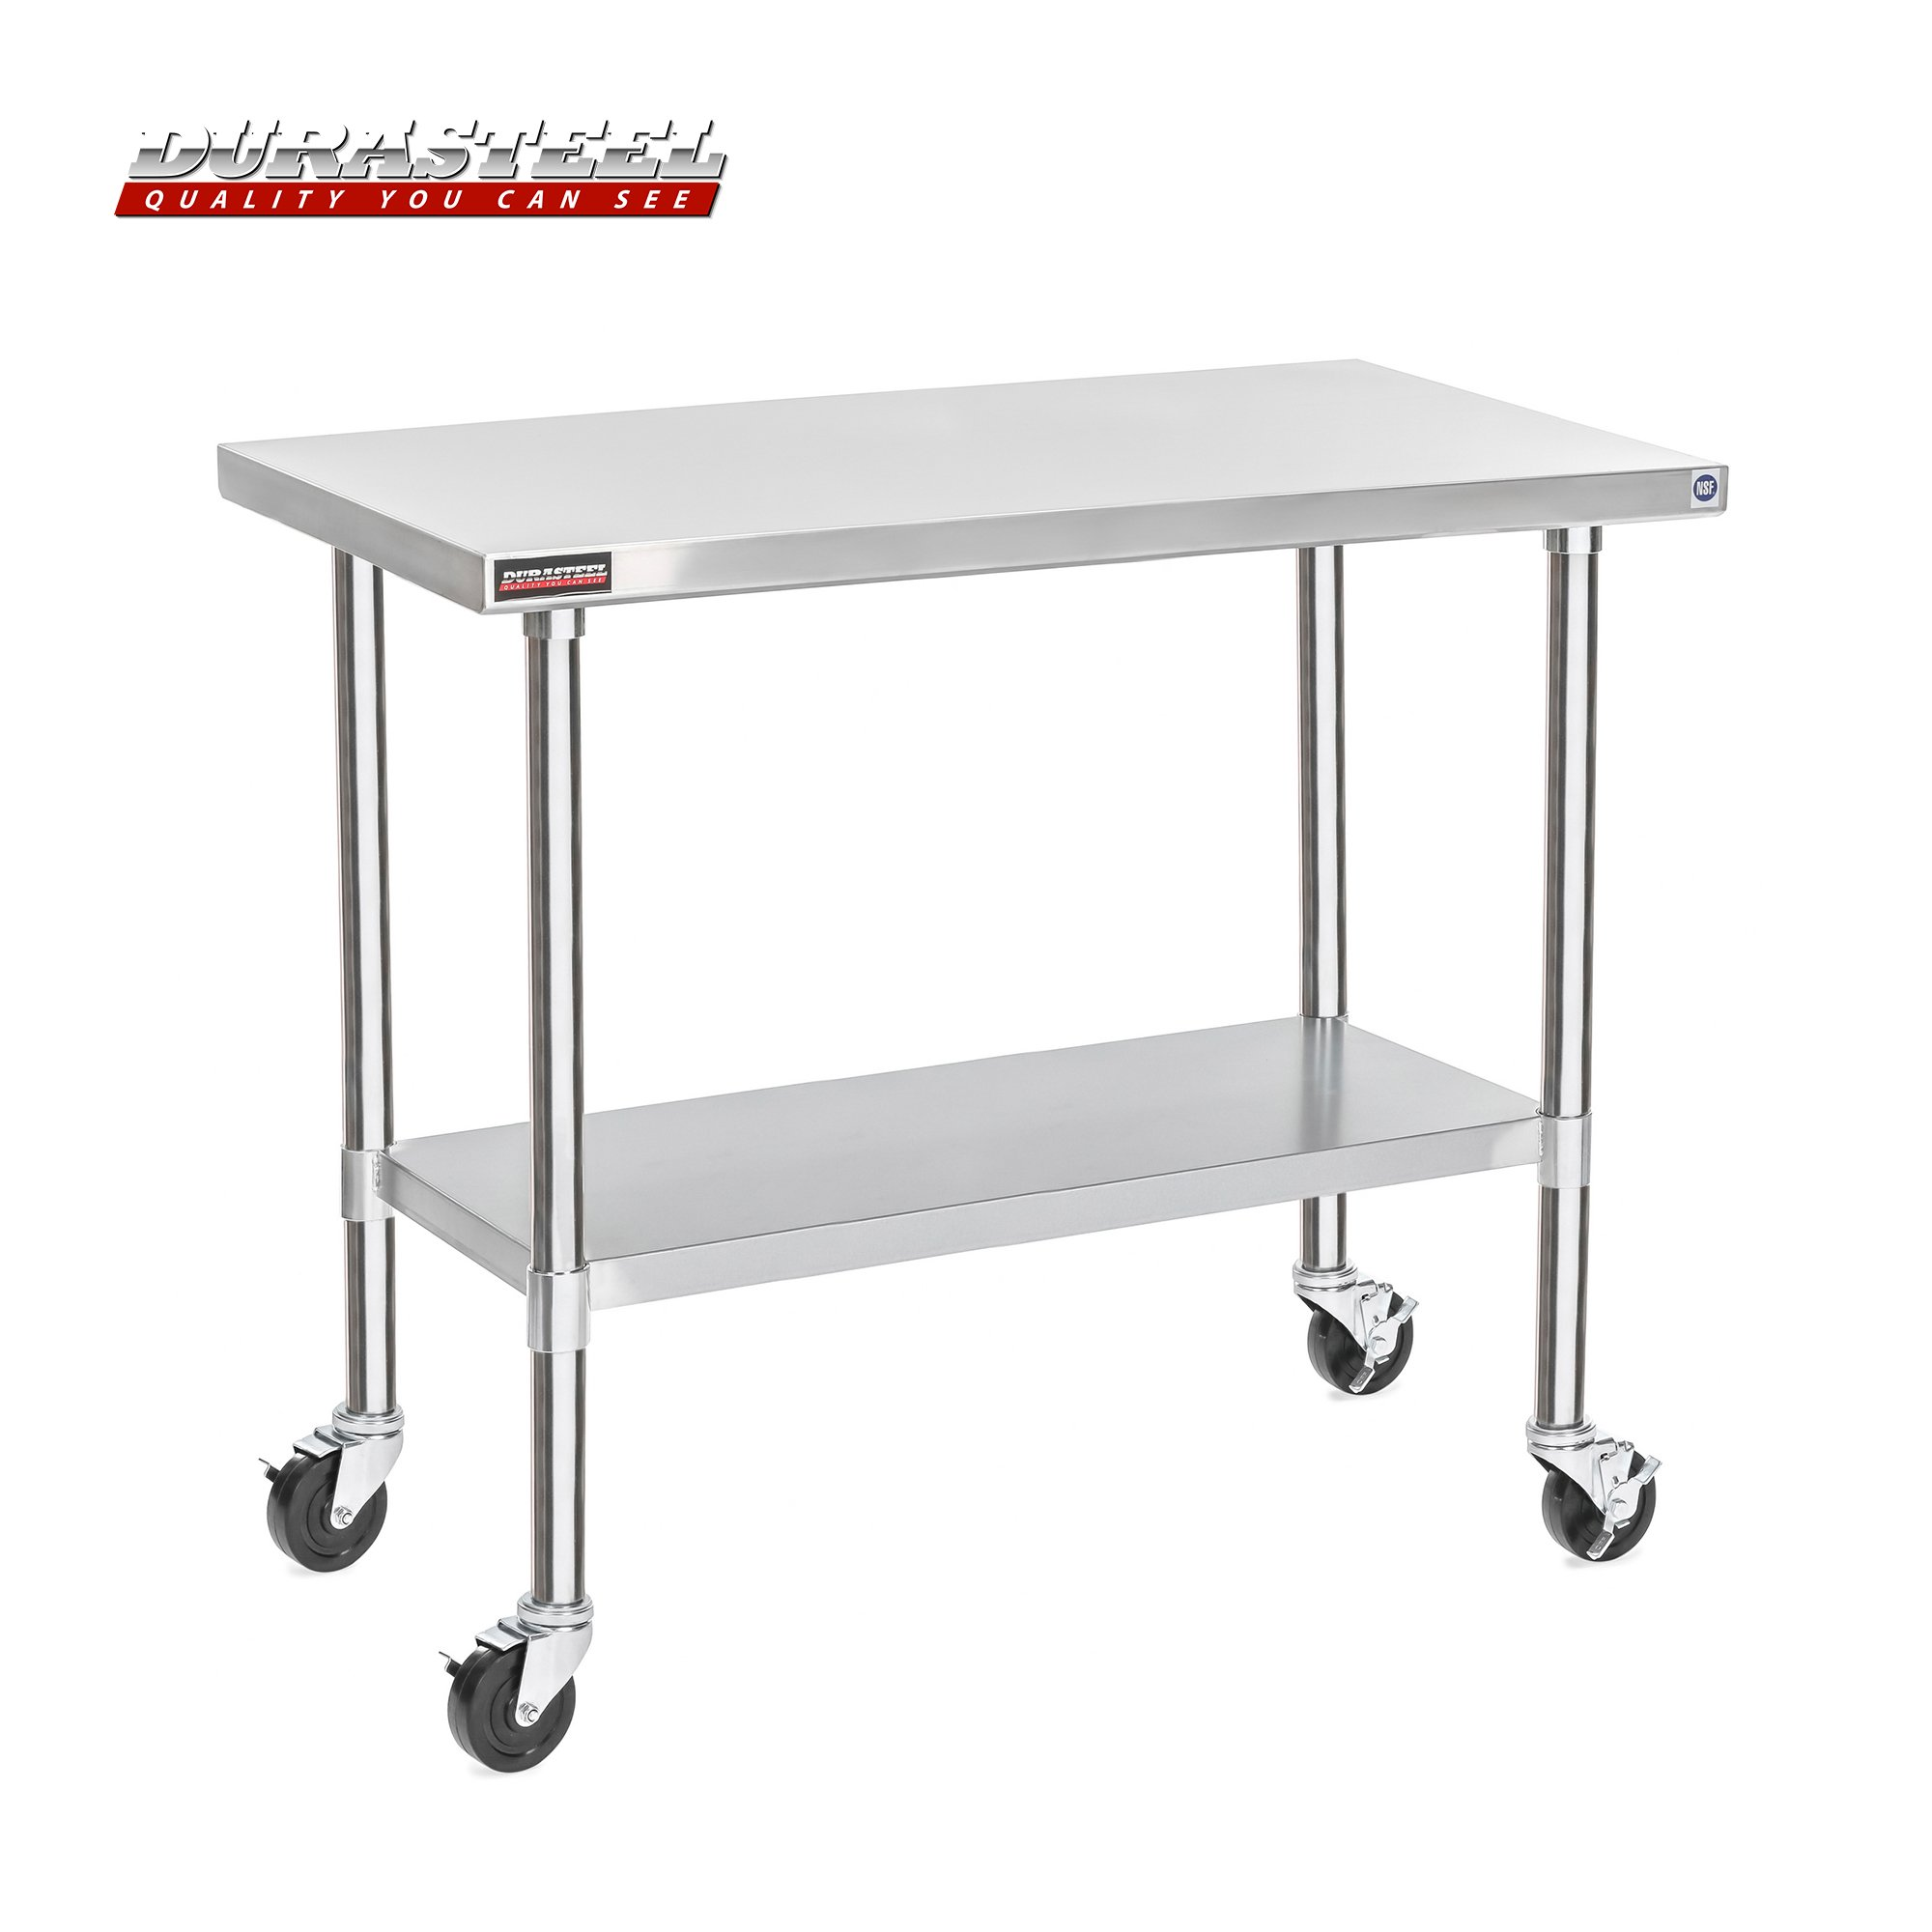 DuraSteel Stainless Steel Work Table 24'' x 48'' x 34'' Height w/ 4 Caster Wheels -  Food Prep Commercial Grade Worktable - NSF Certified - Good For Restaurant, Business, Warehouse, Home, Kitchen, Garage